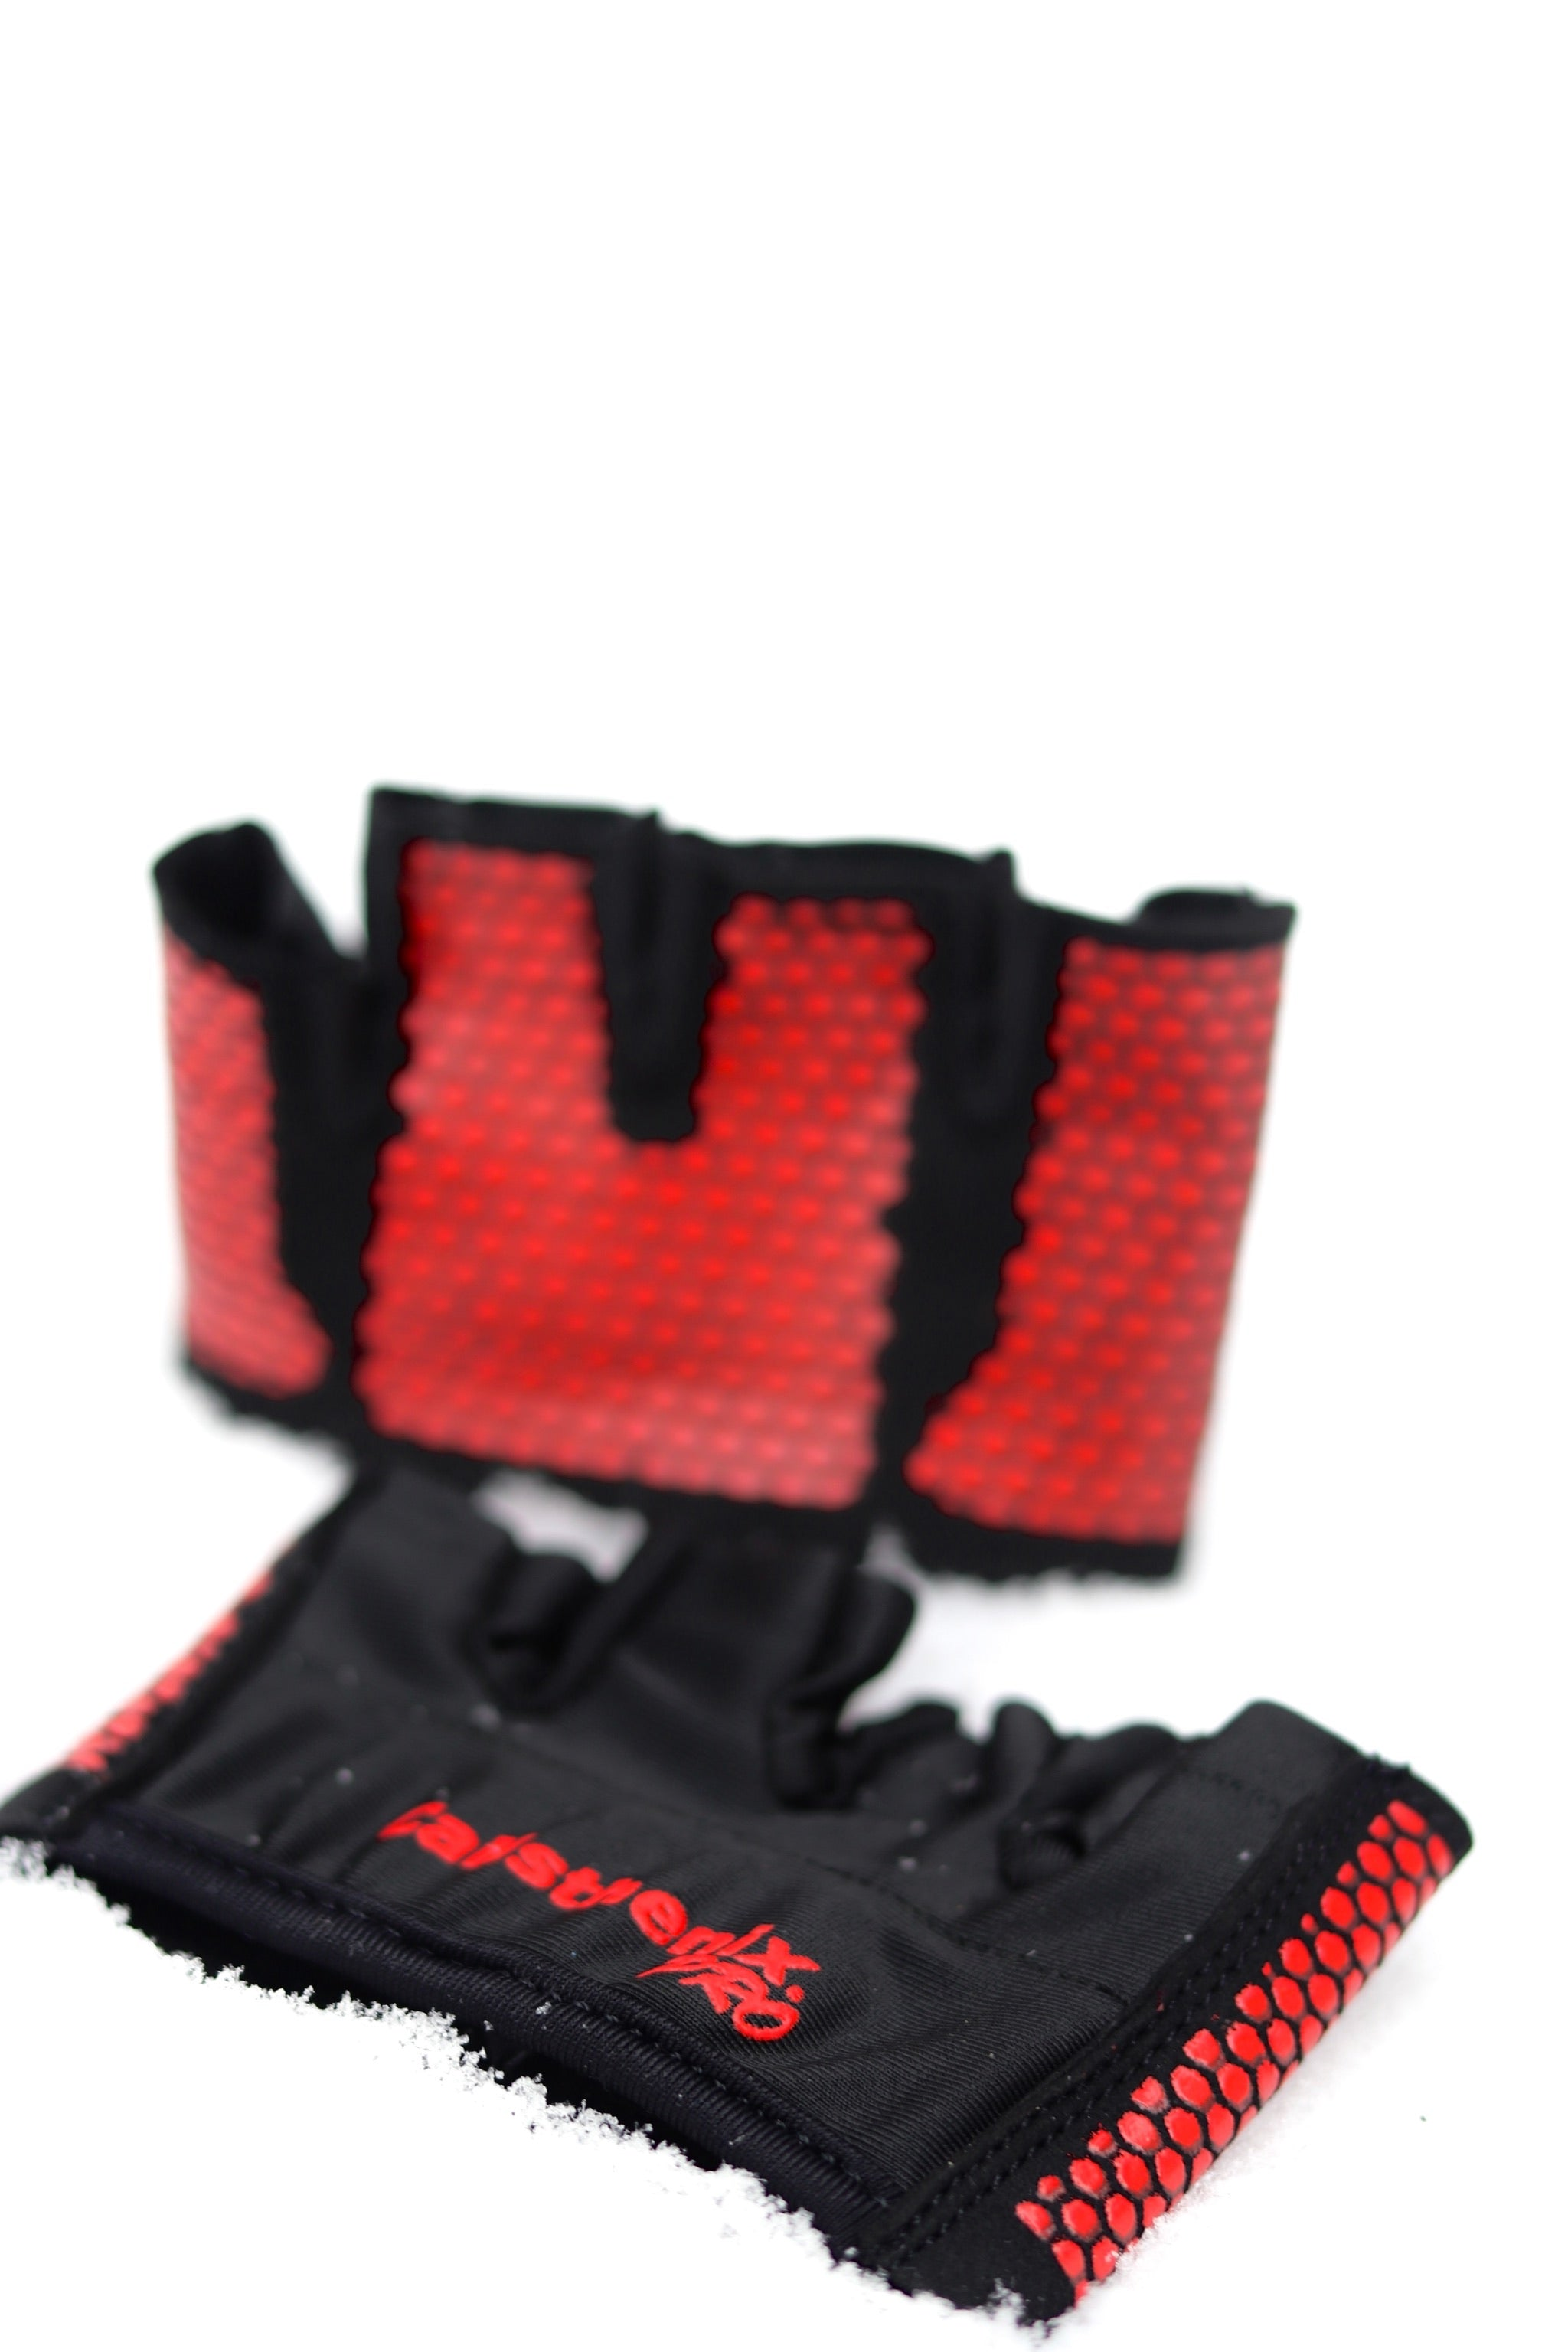 Workout Gloves - Black & Red